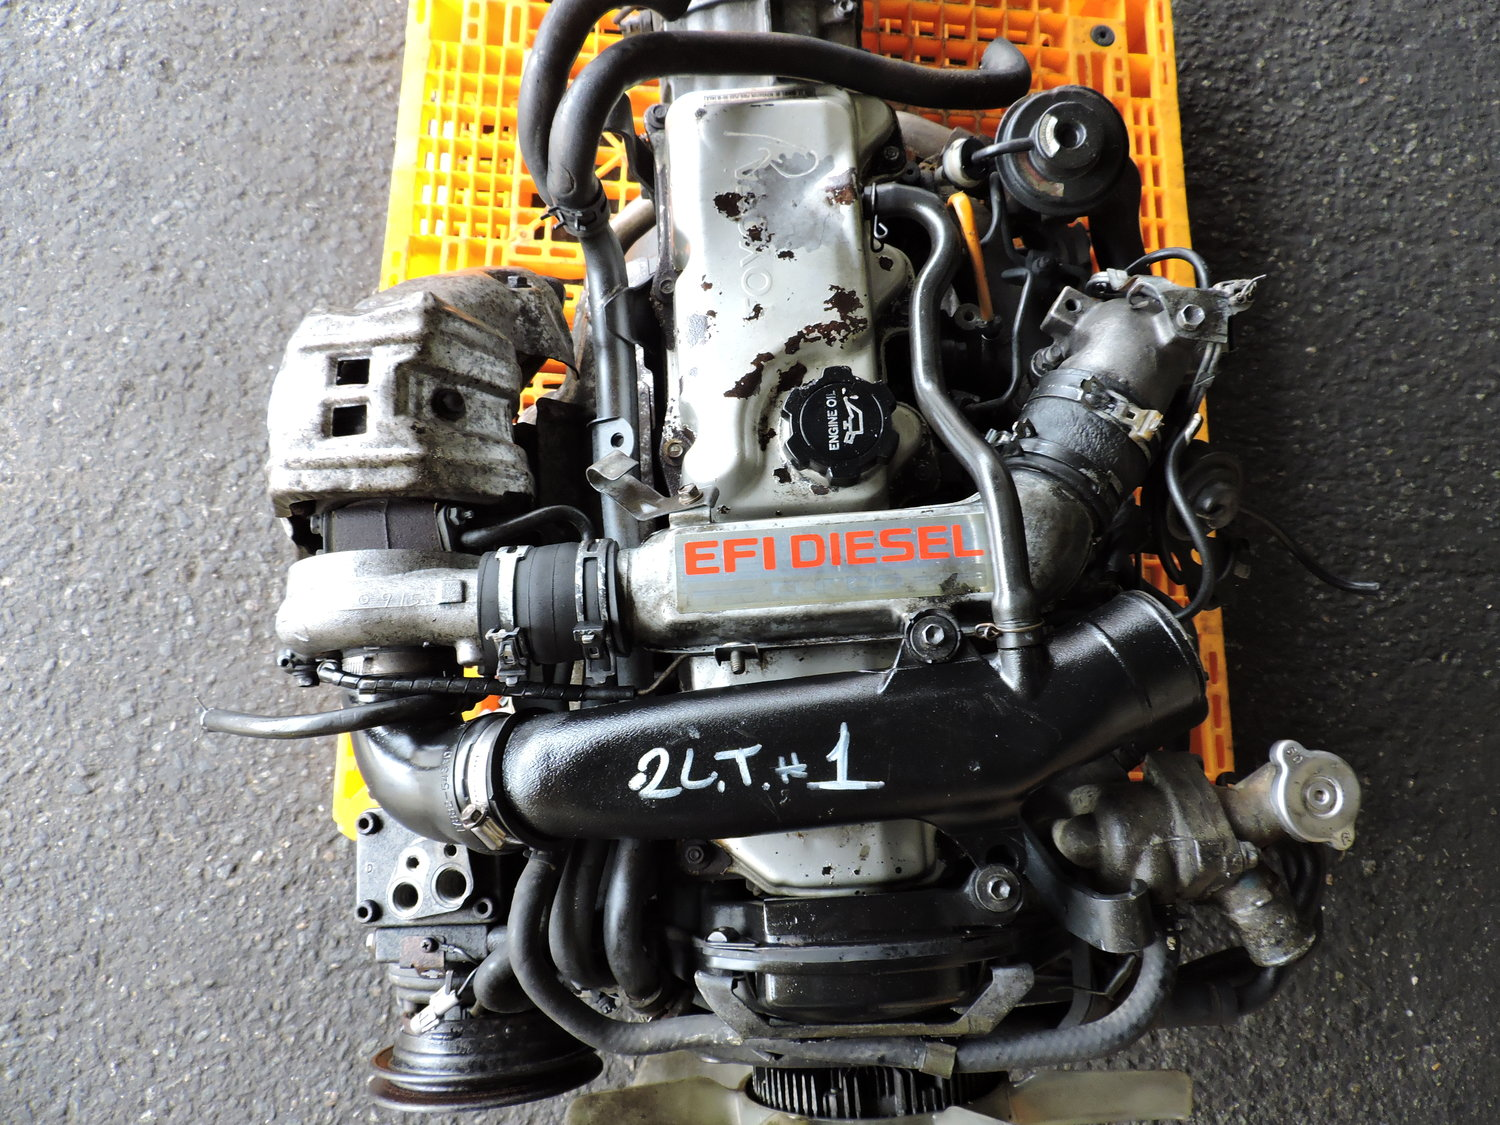 Toyota Hilux Surf LN130 - 2L-TE Turbo Diesel 2 4L JDM Swap — JDM Engines  New Jersey